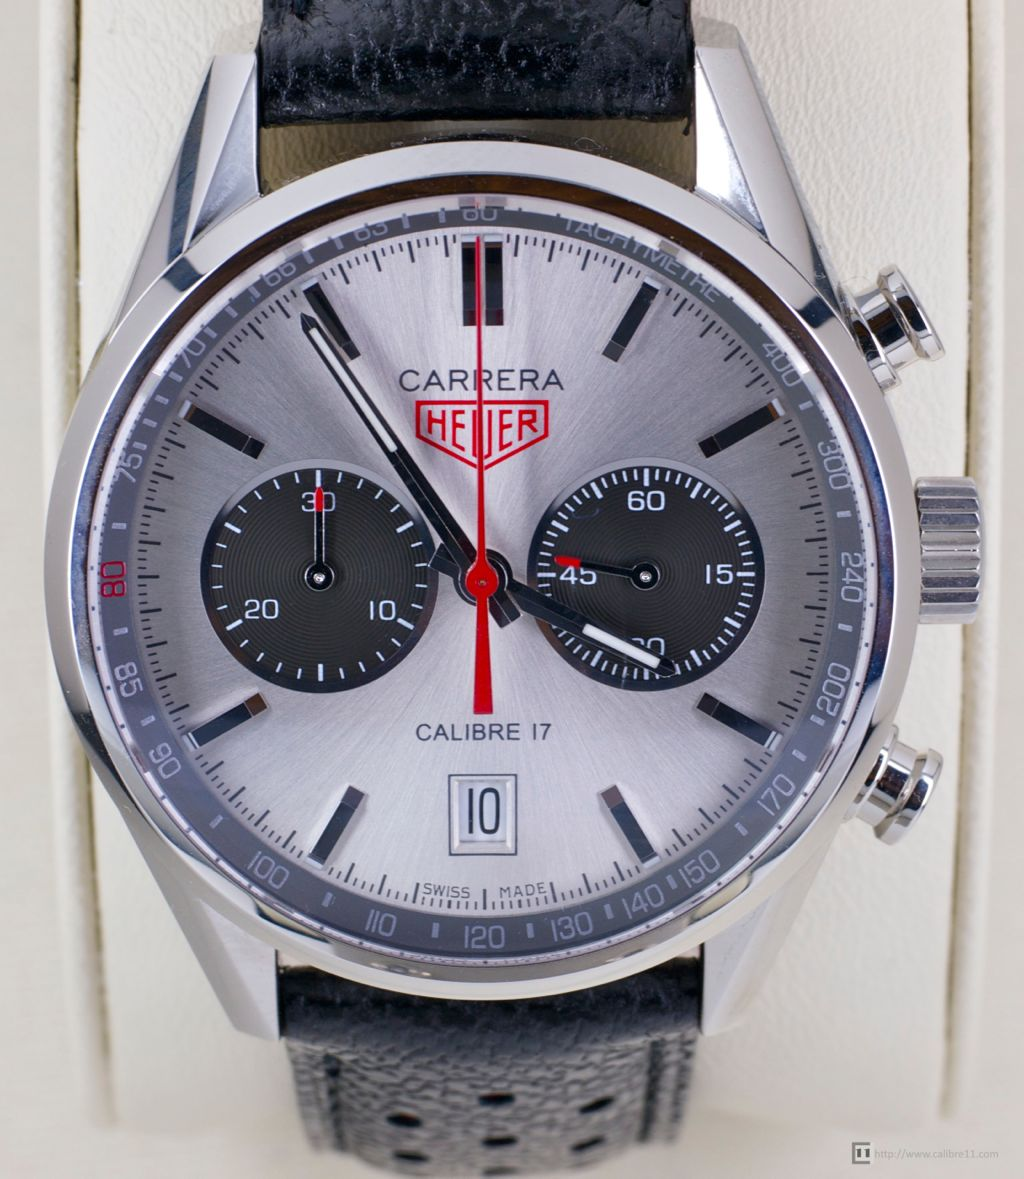 tag heuer 80th birthday watch for sale ; tag-heuer-carrera-jack-heuer-80-3